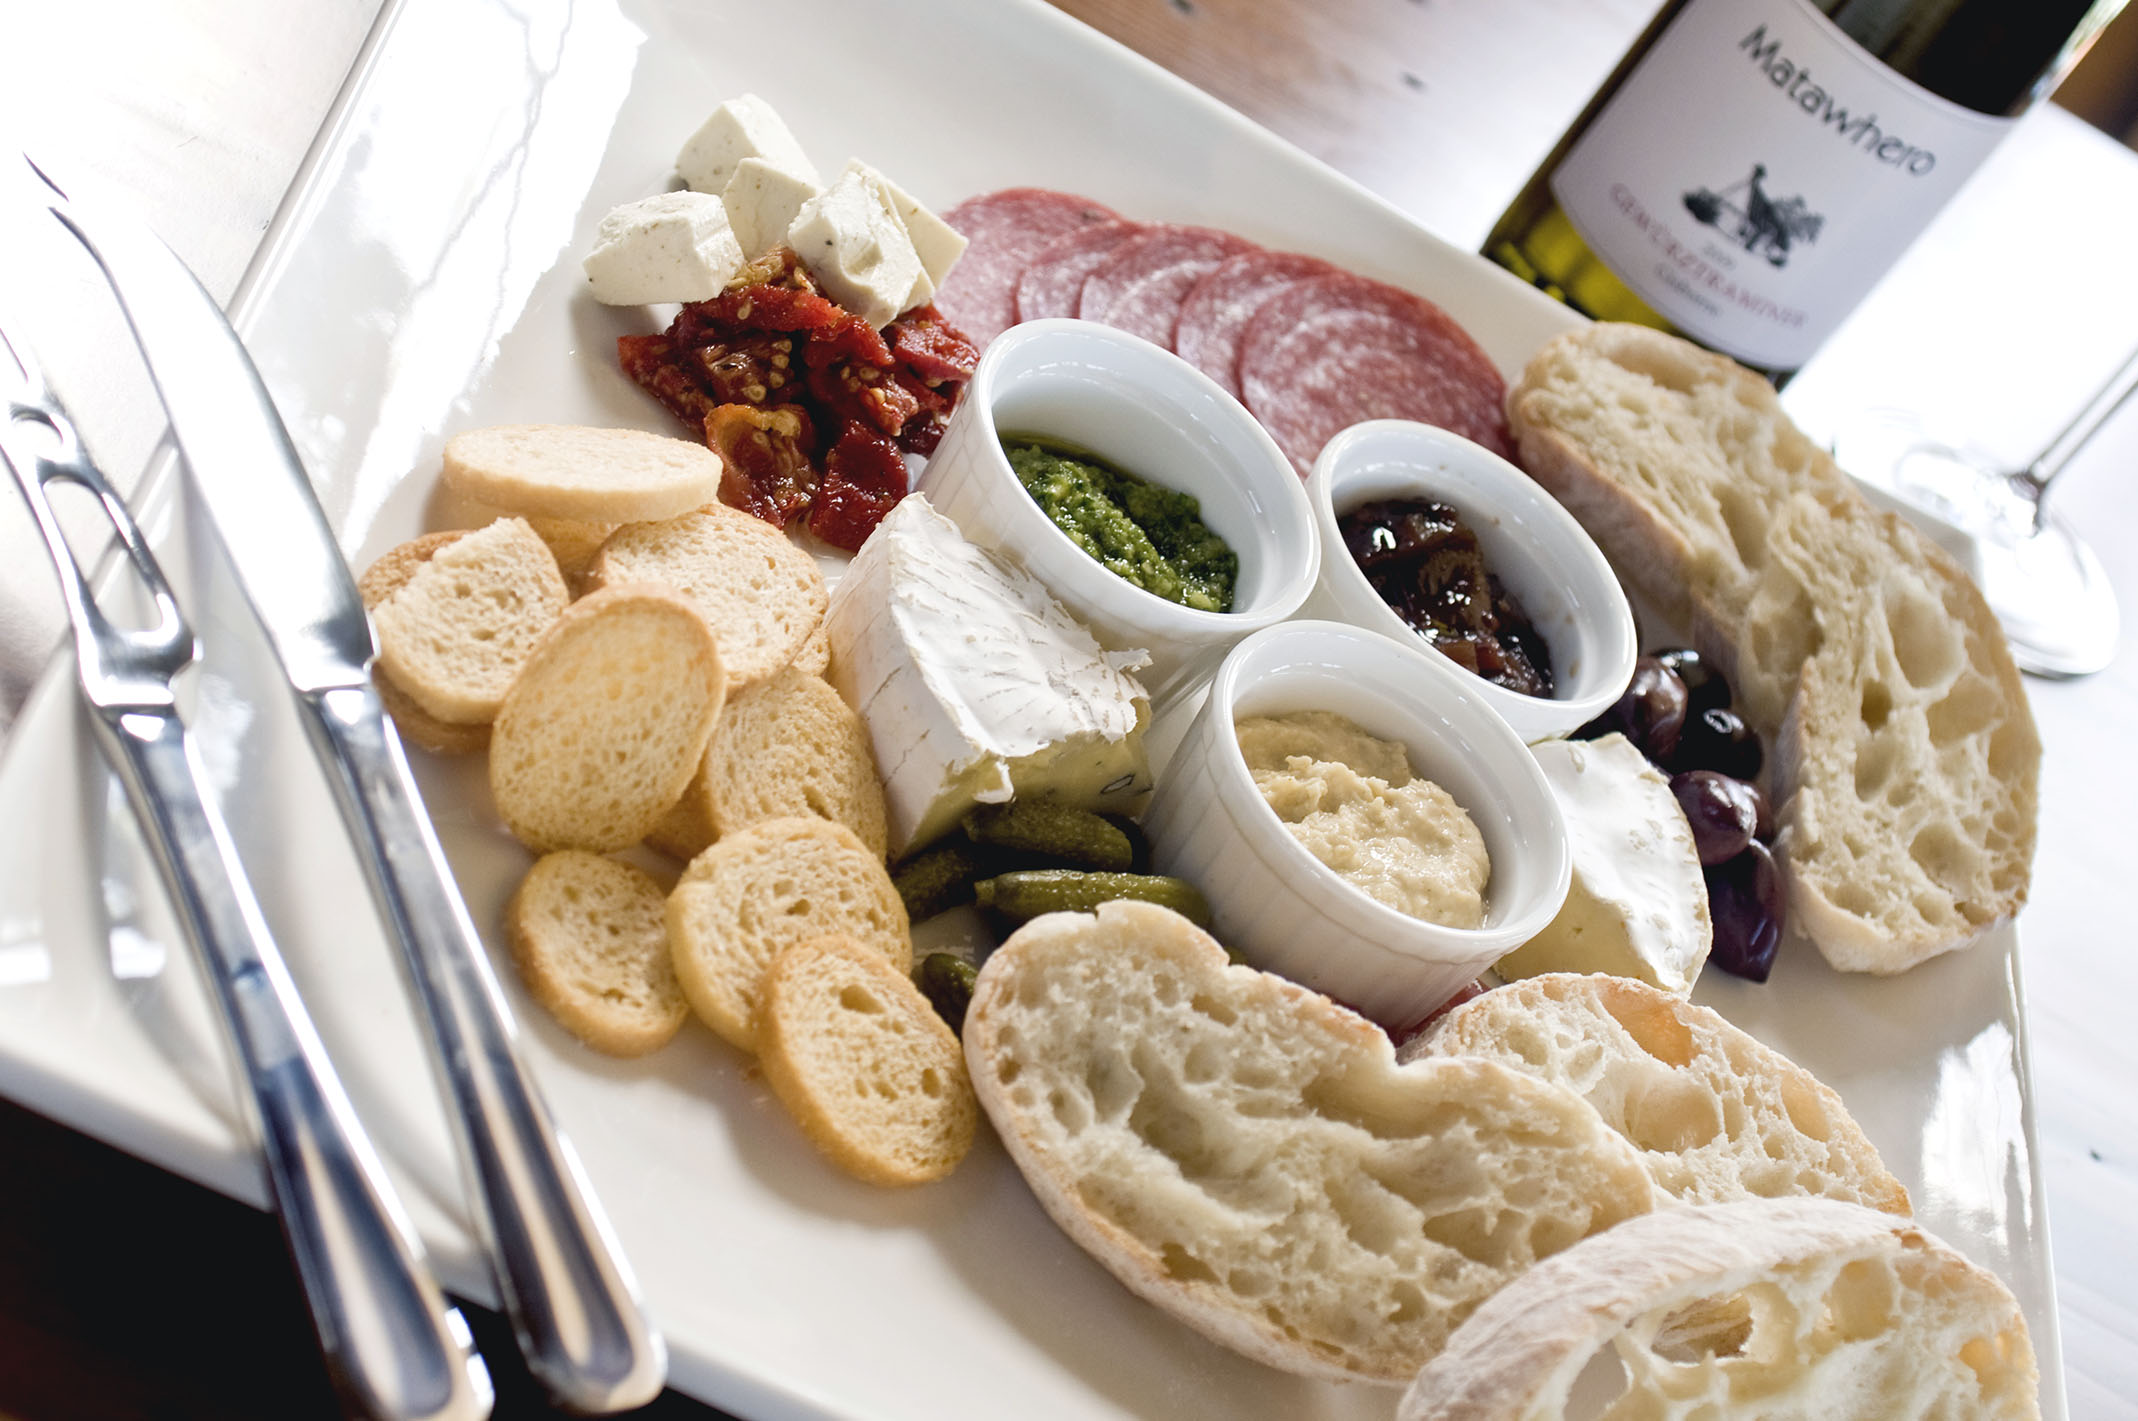 A platter of breads and salami at Matawhero Vineyards at the Gisborne Wine and Food Weekend